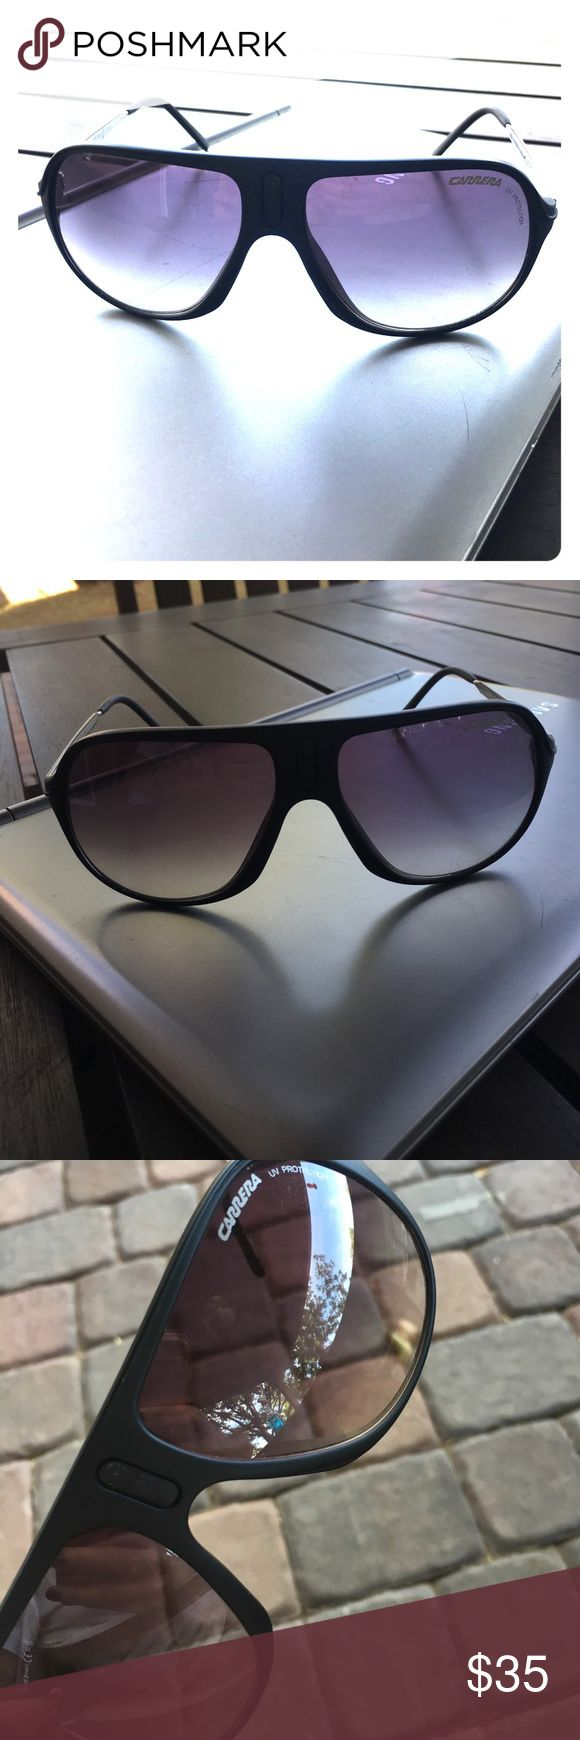 AUTHENTIC Black CARRERA Sunglasses SAFAR/IR AUTHENTIC Pre-Owned CARRERA Sunglasses Black with Grey lenses. Missing the center emblem see photos. No case will be included. They are priced accordingly. Carrera Accessories Sunglasses